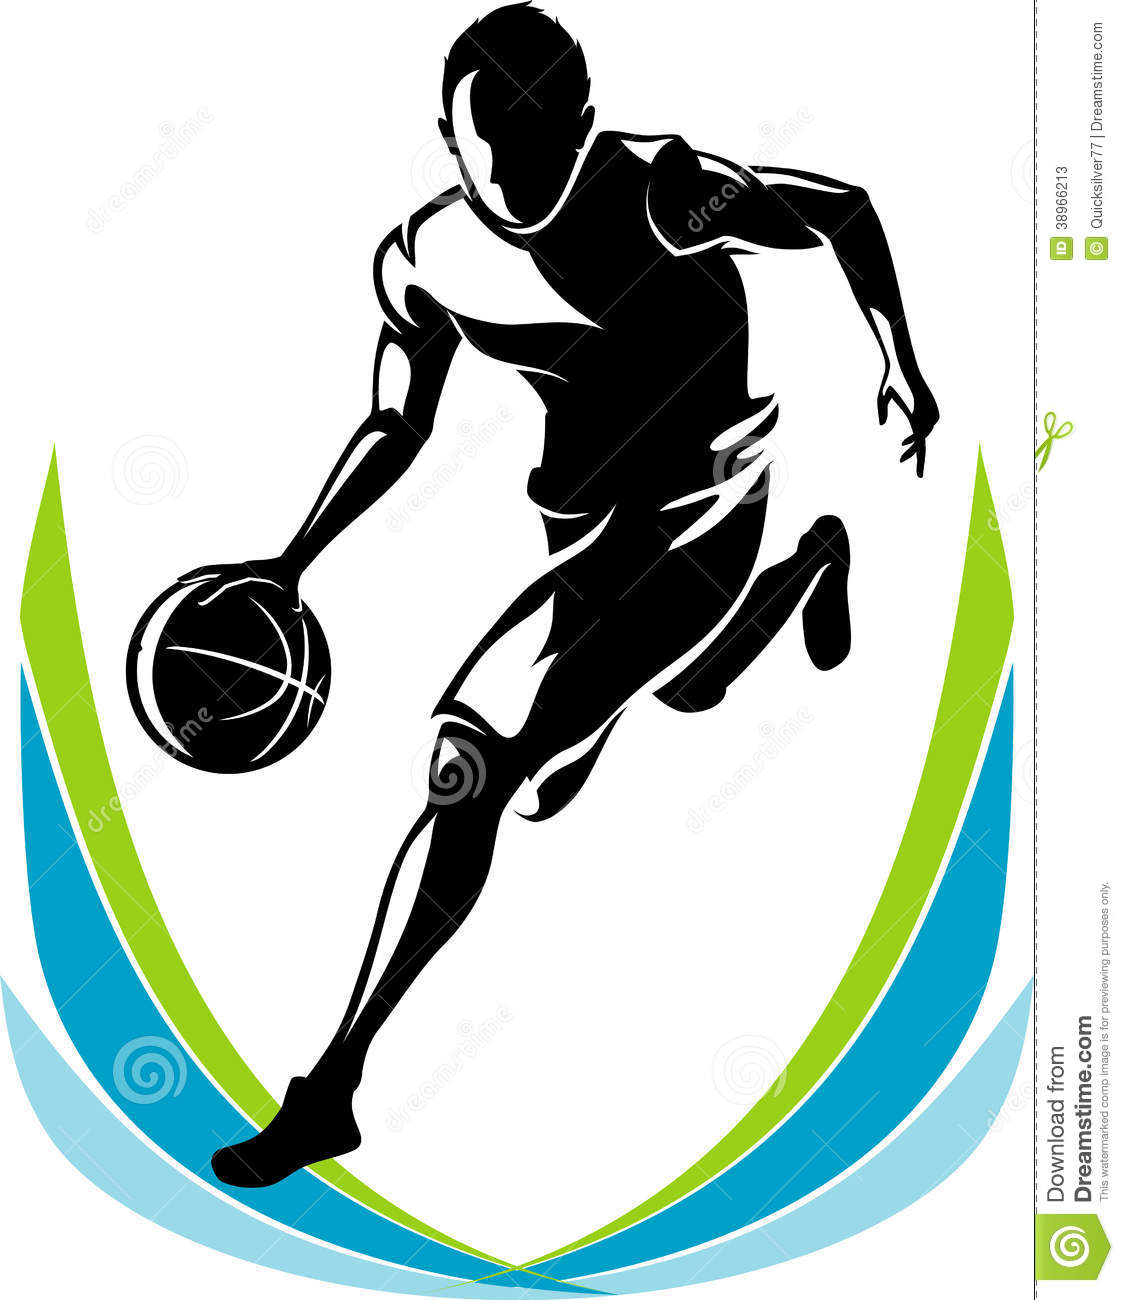 Basketball Player Silhouette Stock Illustration ...